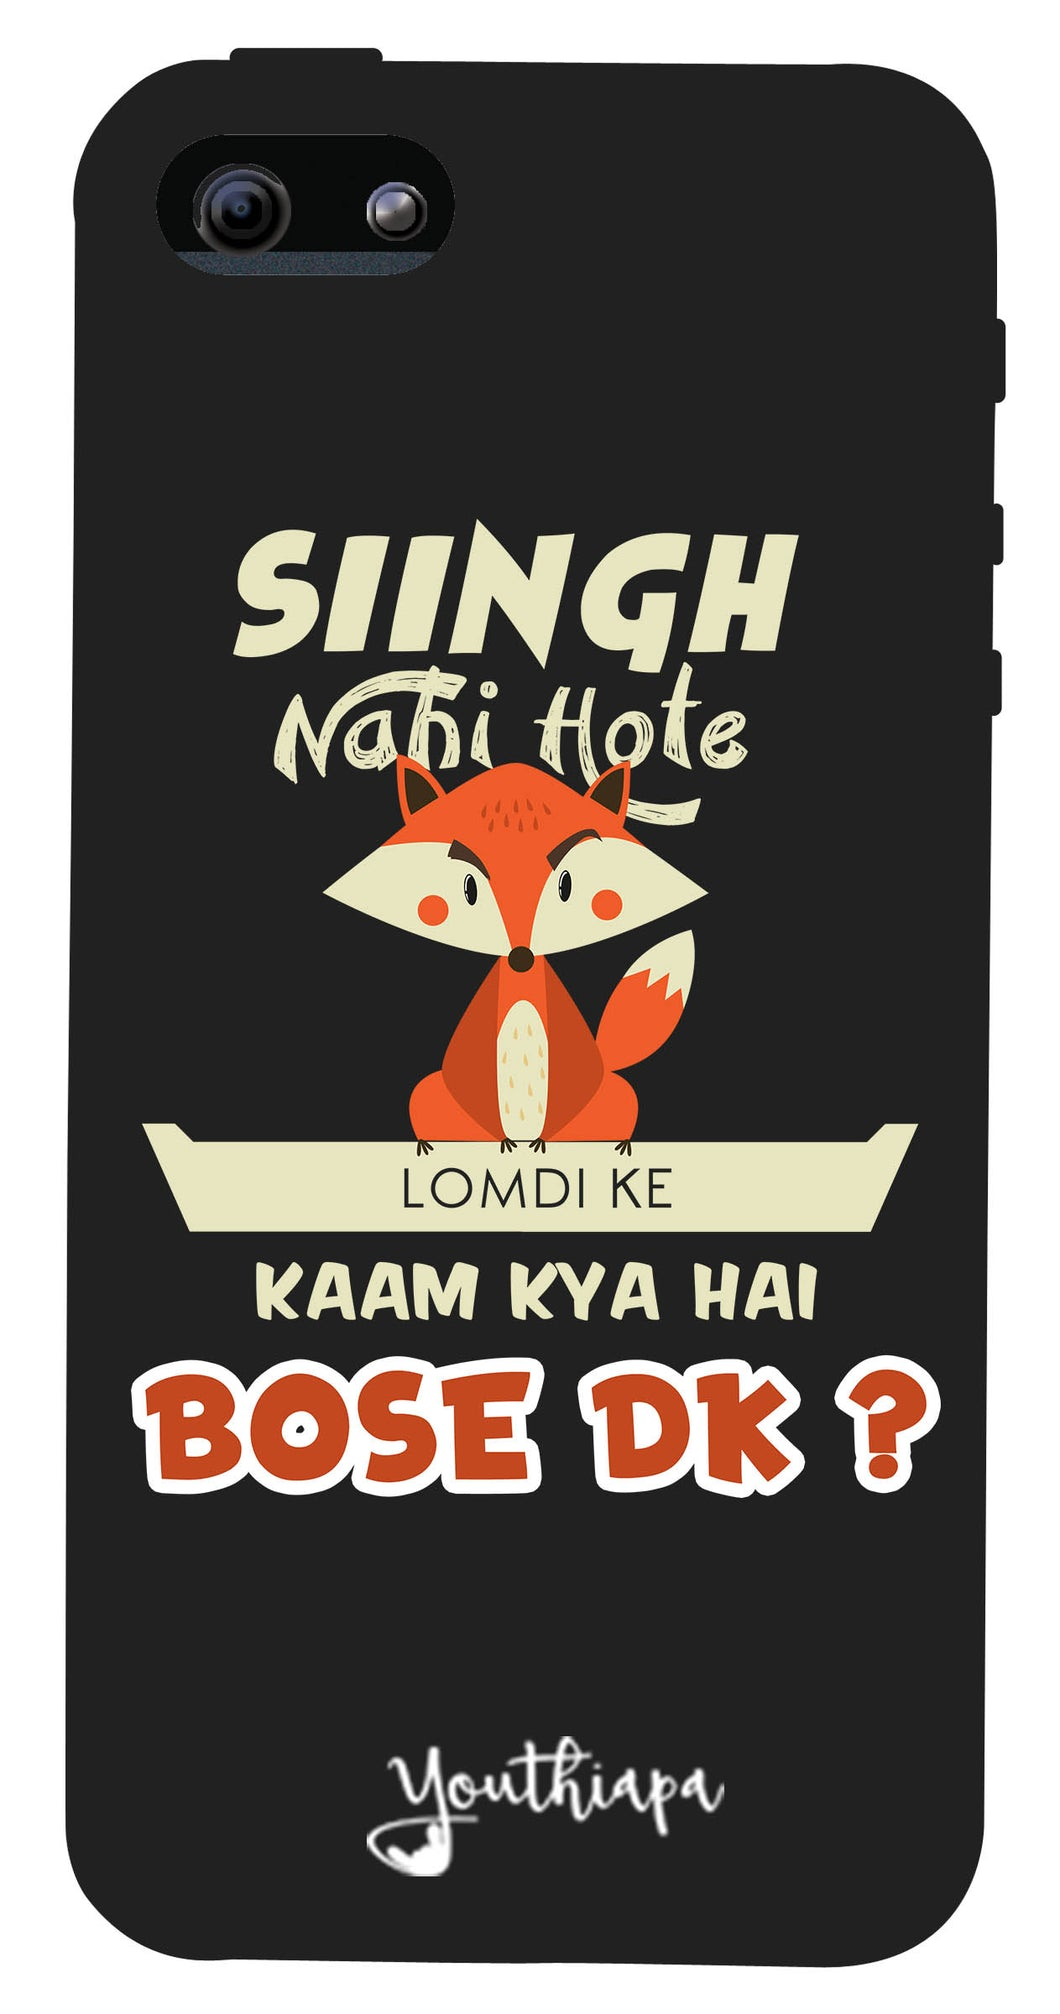 Singh Nahi Hote edition for I phone 5/5s